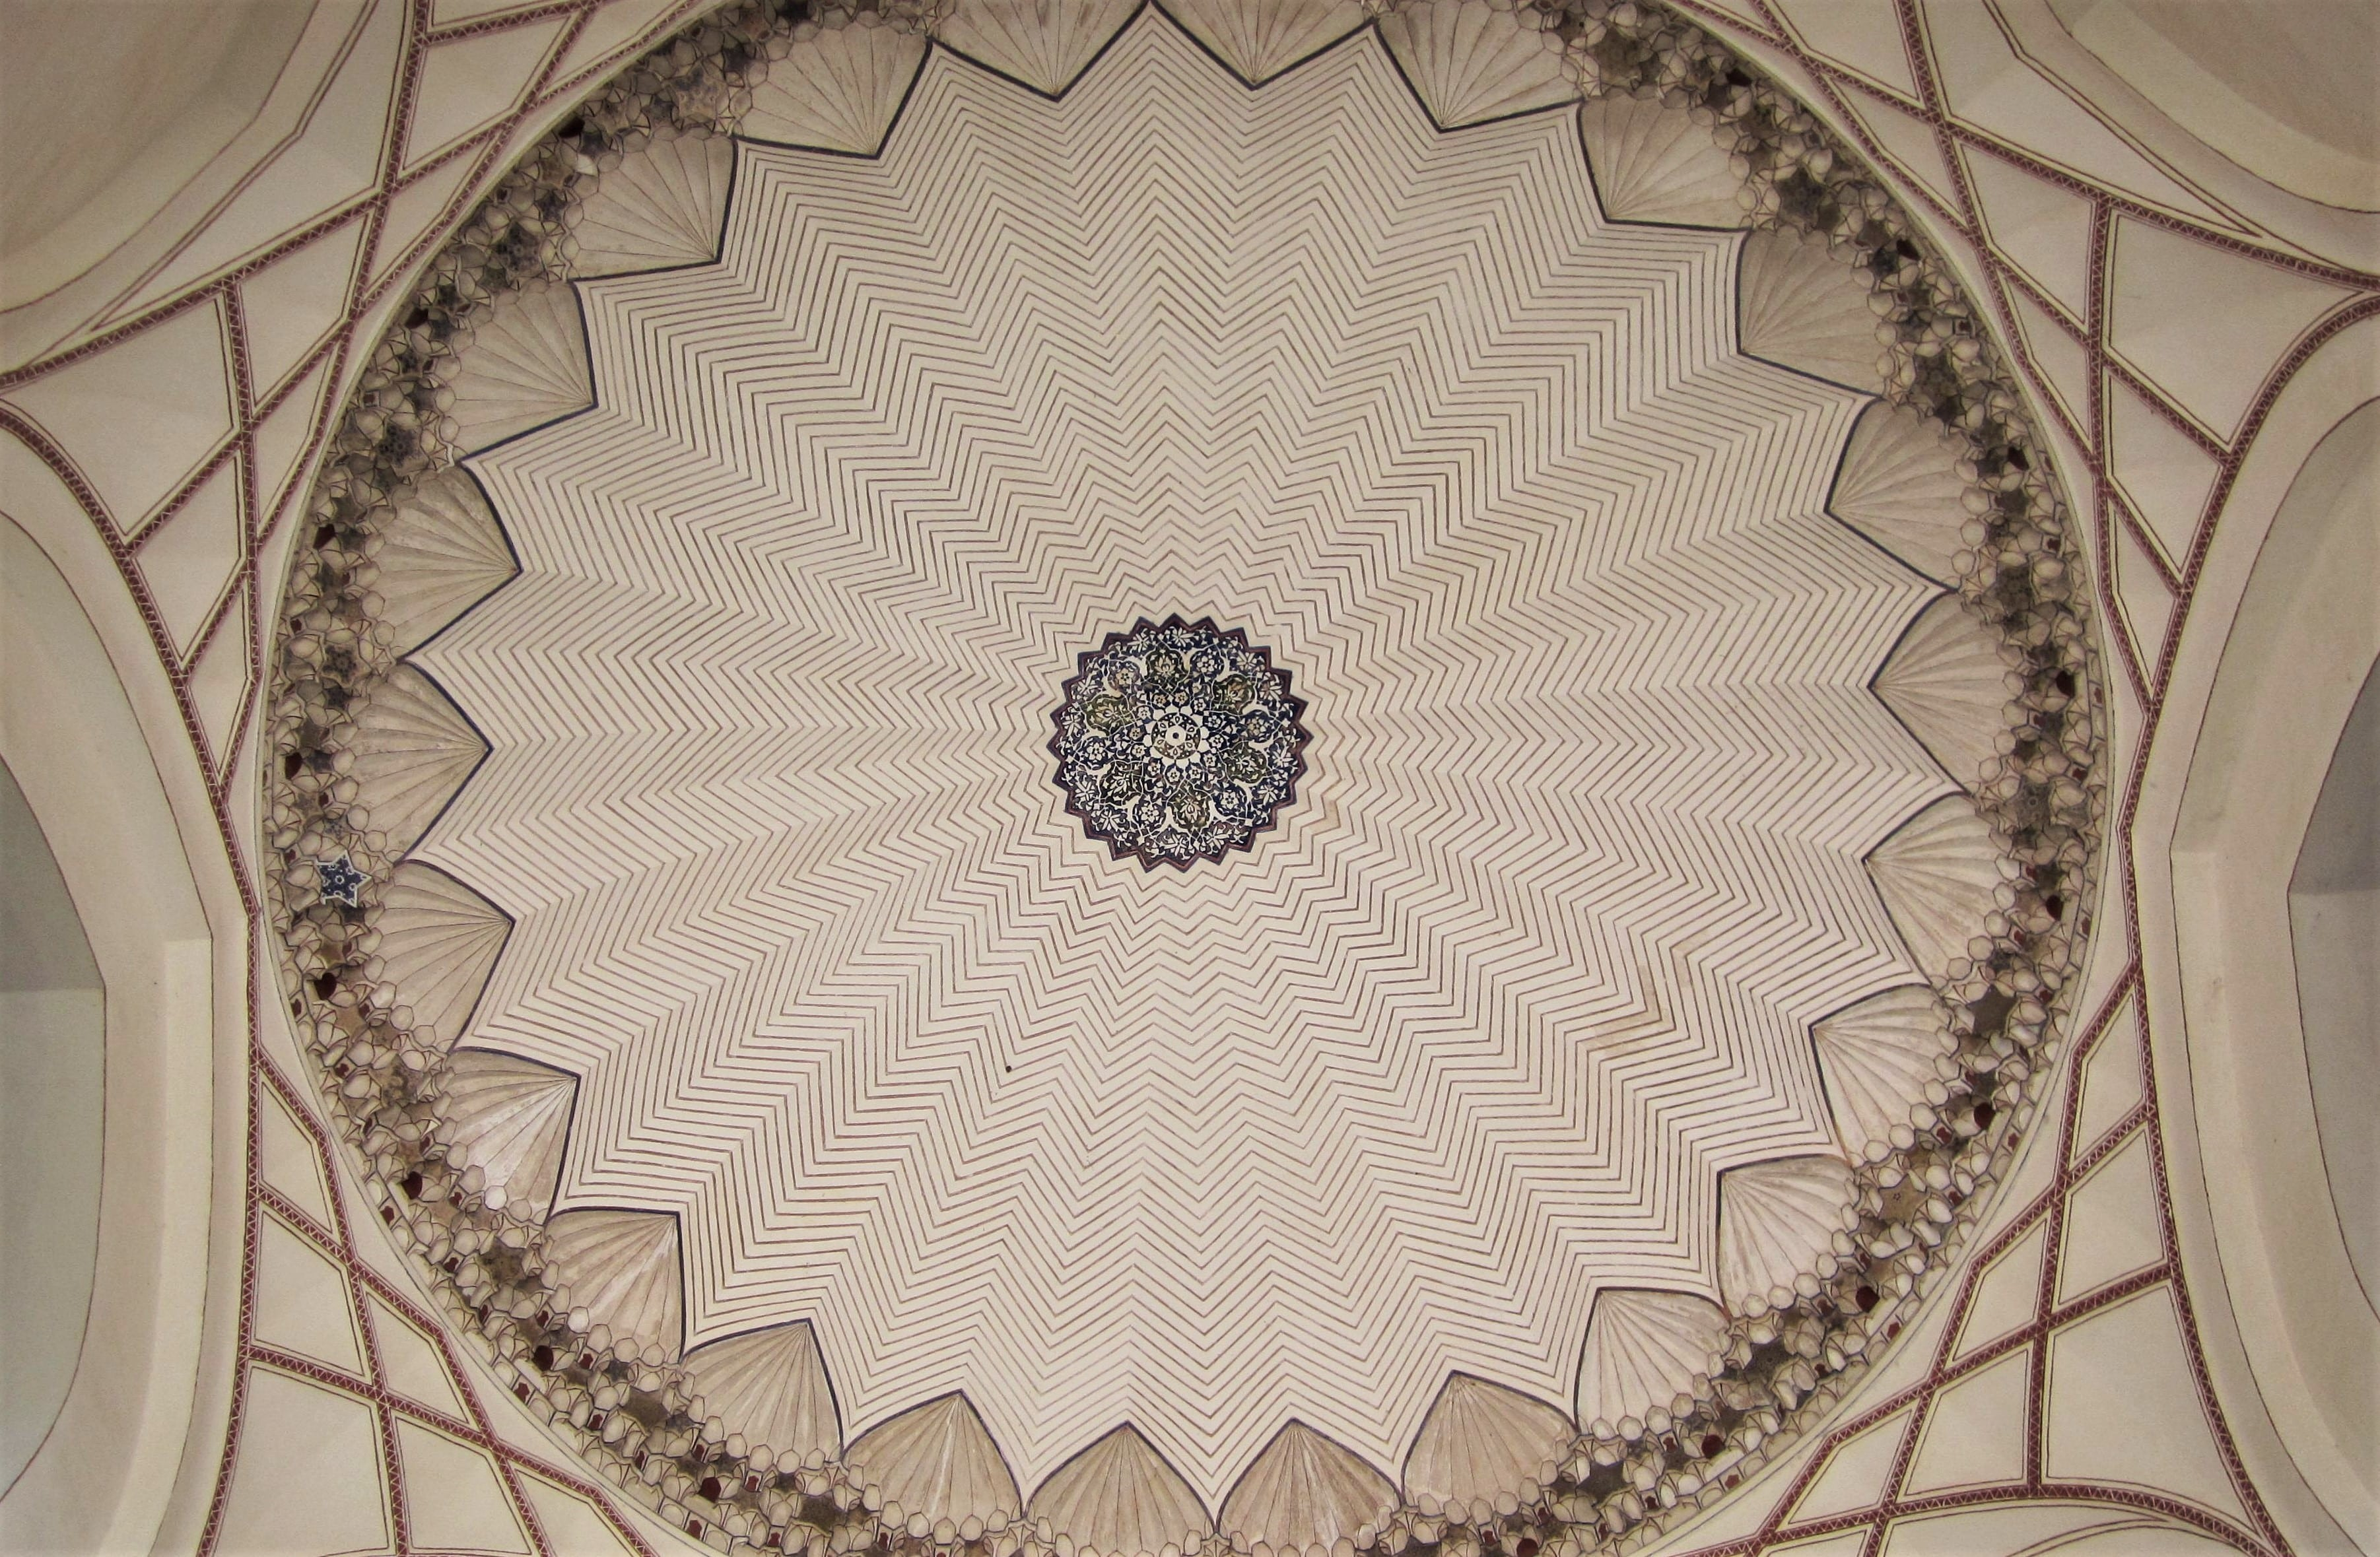 The ornate ceiling of the entrance to the Tomb chamber exemplifies the Persian attention to detail.